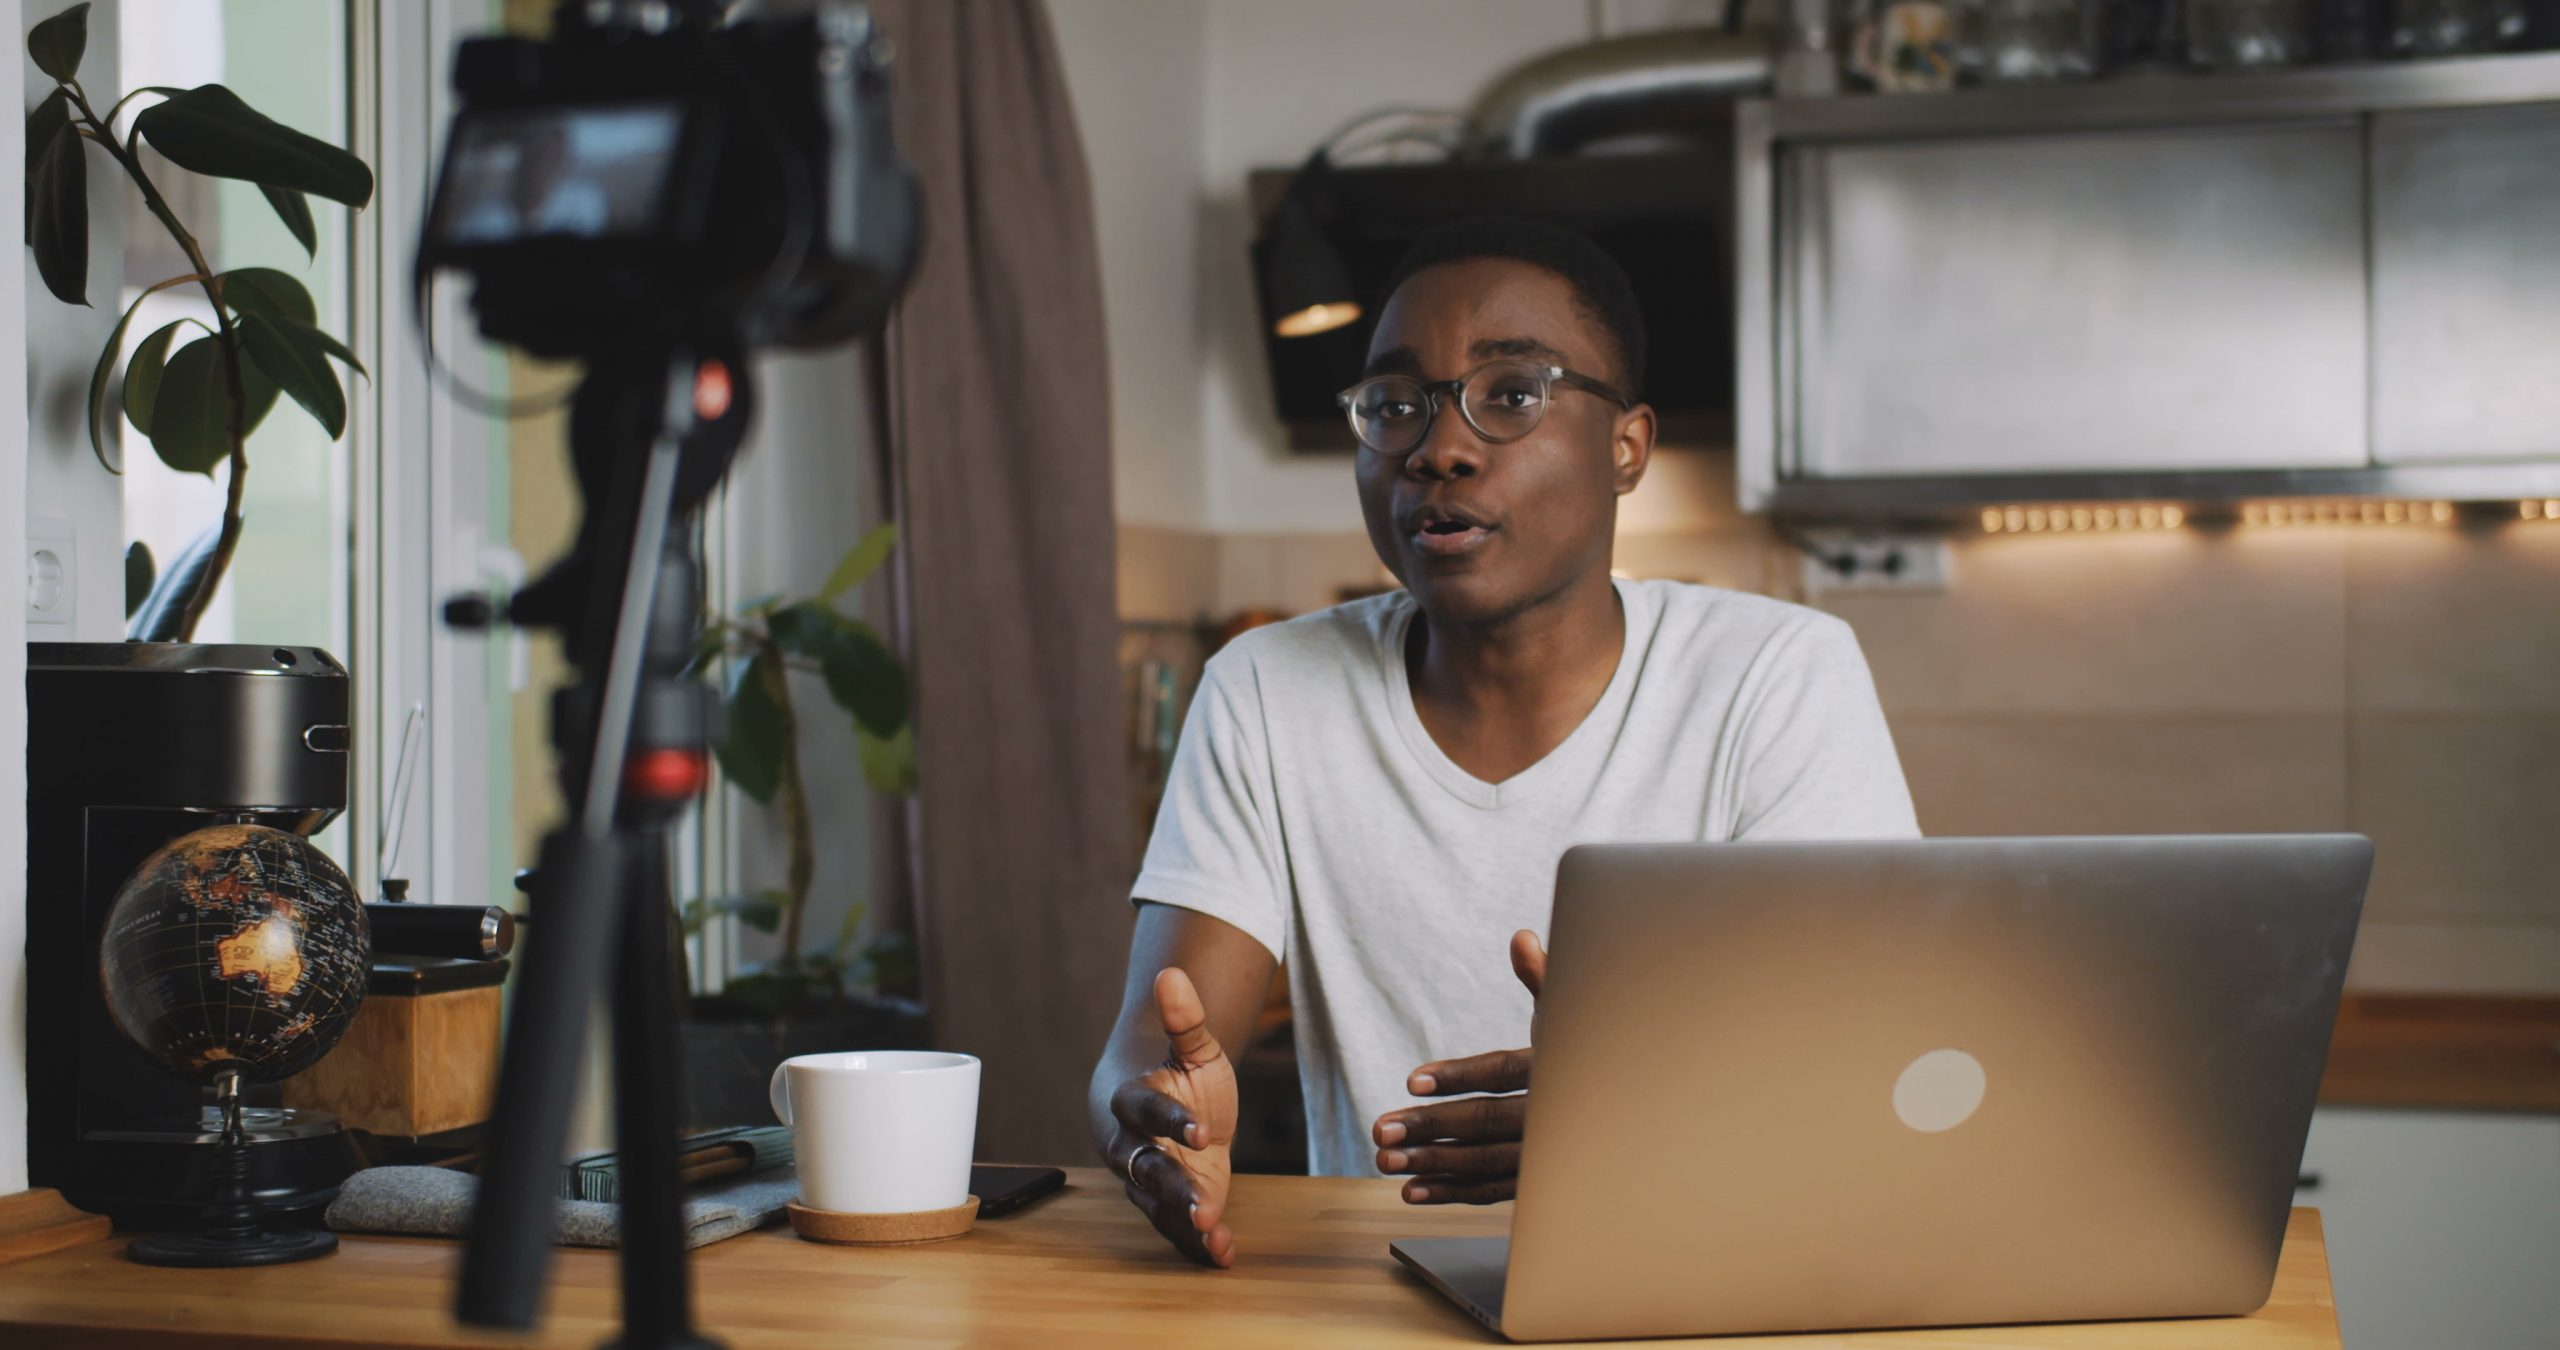 Happy young smart black blogger man filming new vlog video with professional camera in kitchen at home slow motion. Blogging, live streaming and entertainment as modern creative freelance work.